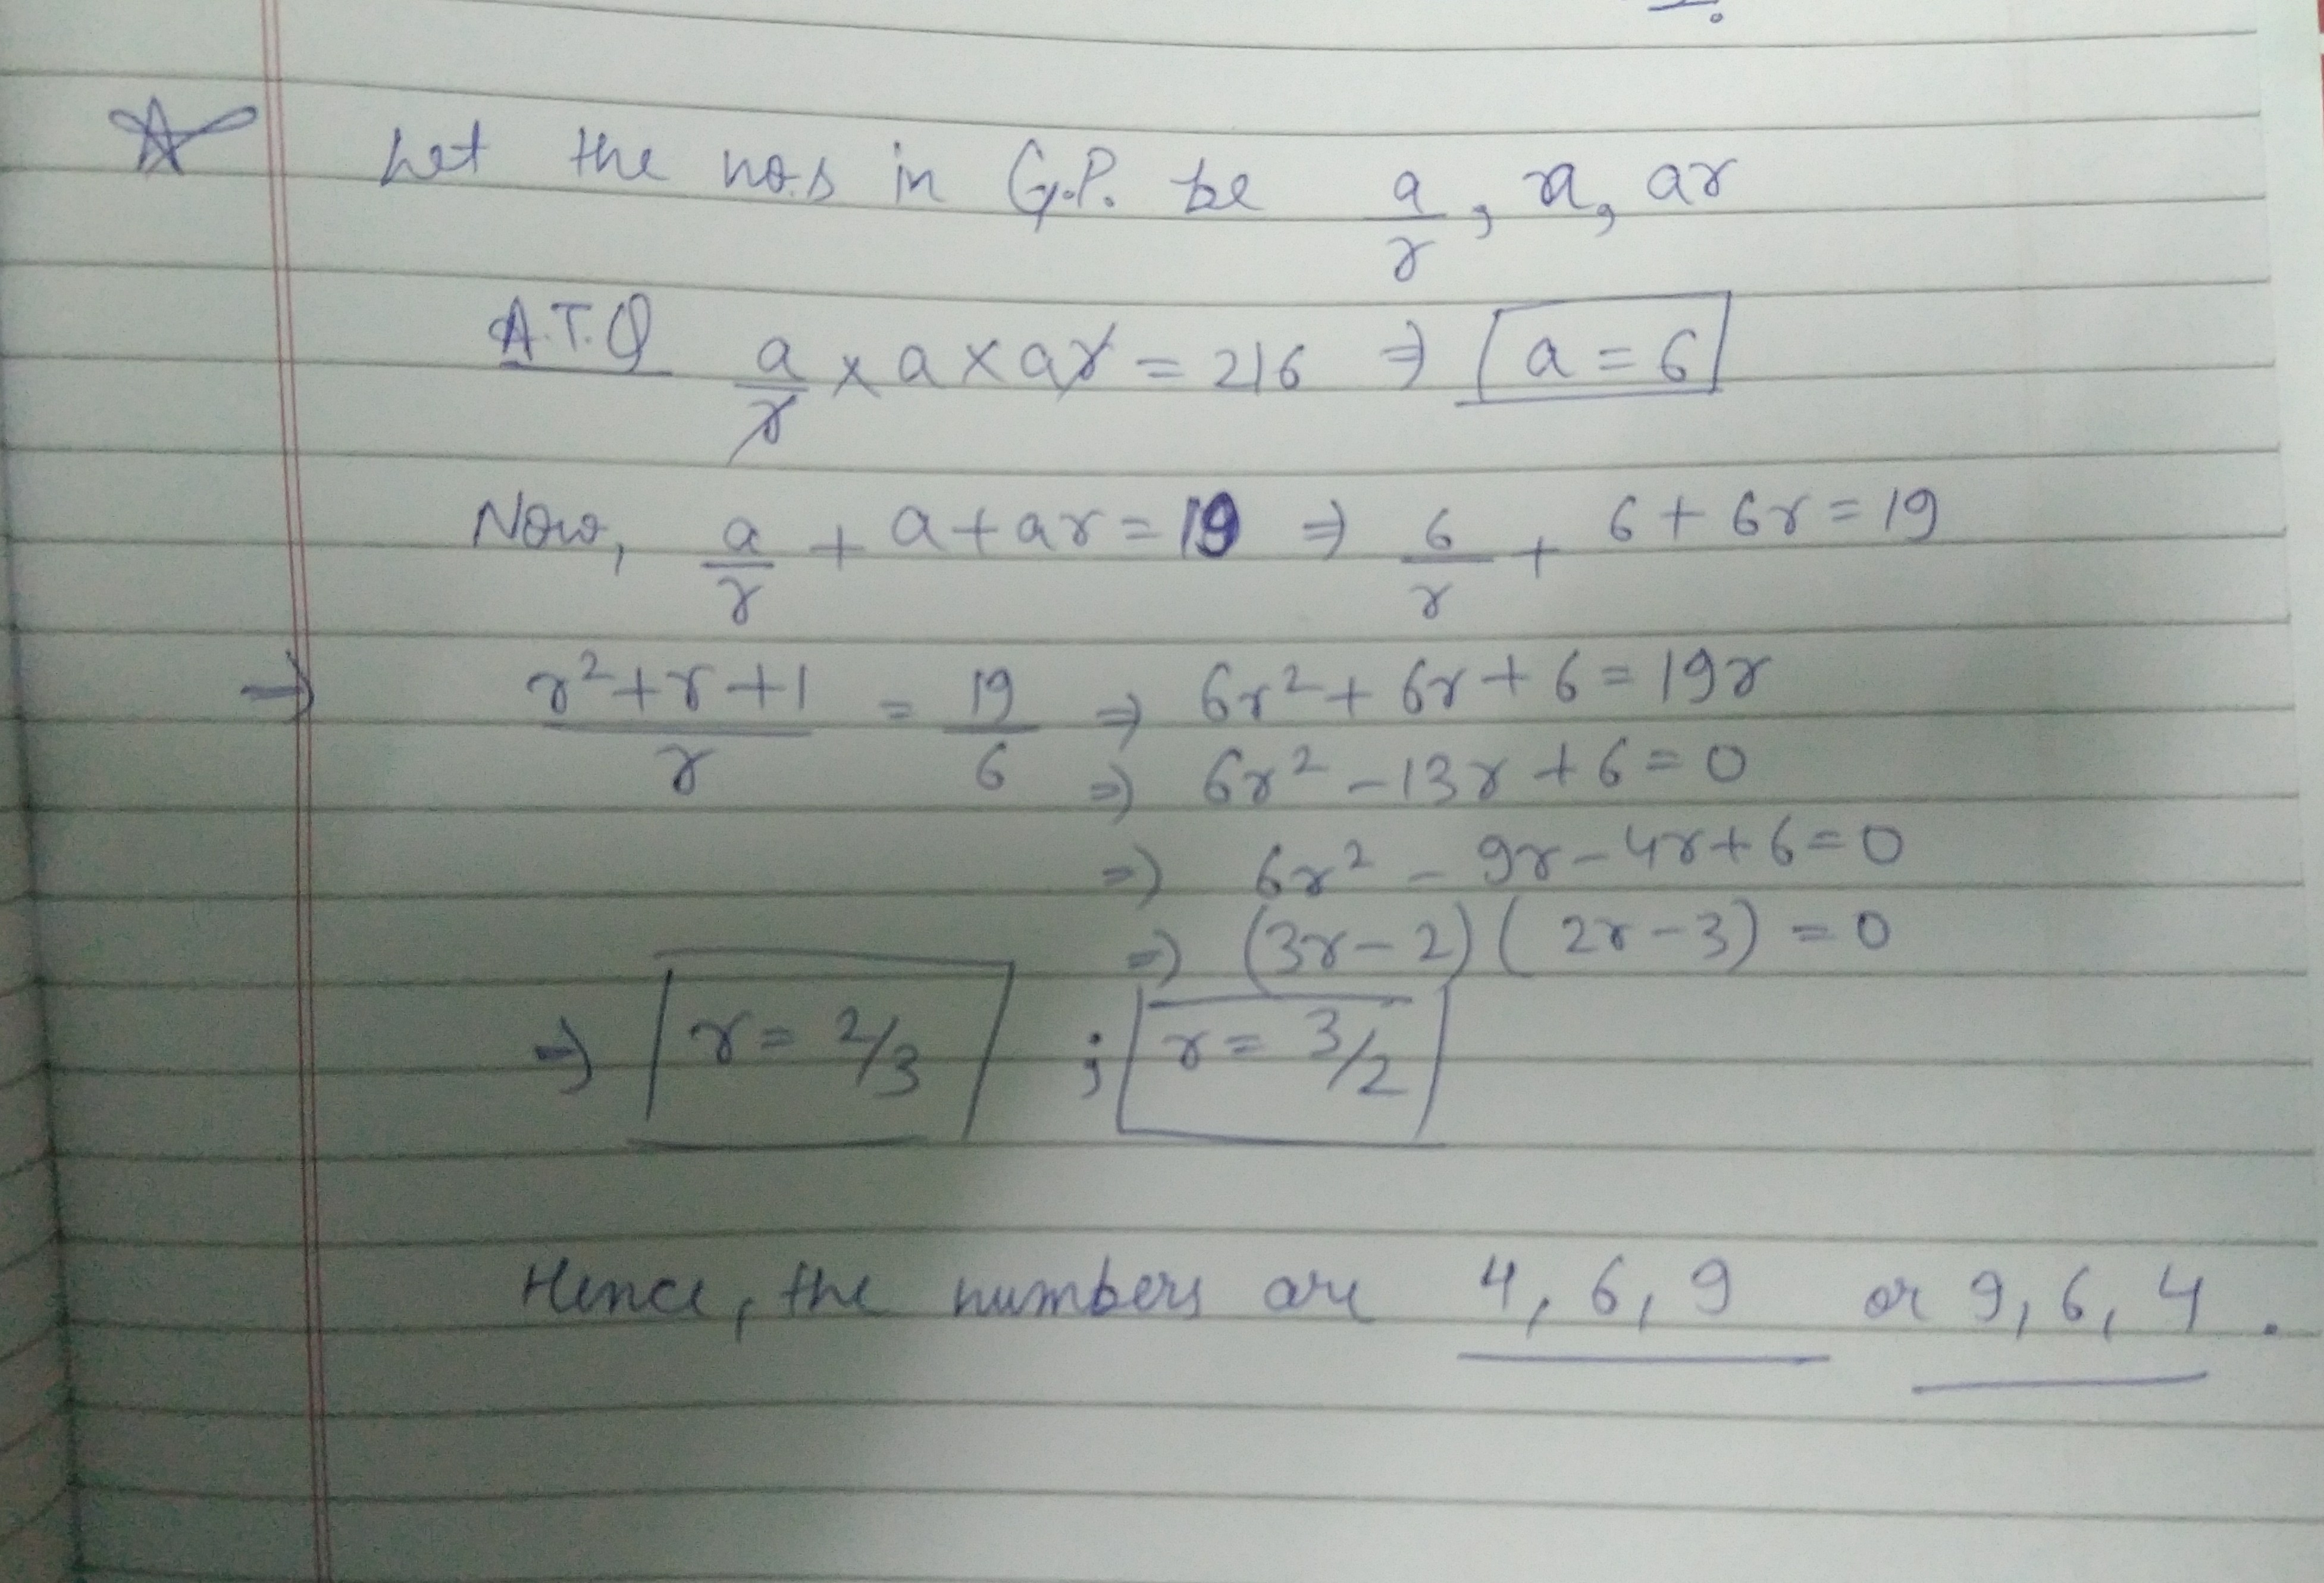 Find The Three Number Of Gp Whose Sum Is 19 And Product Is 216